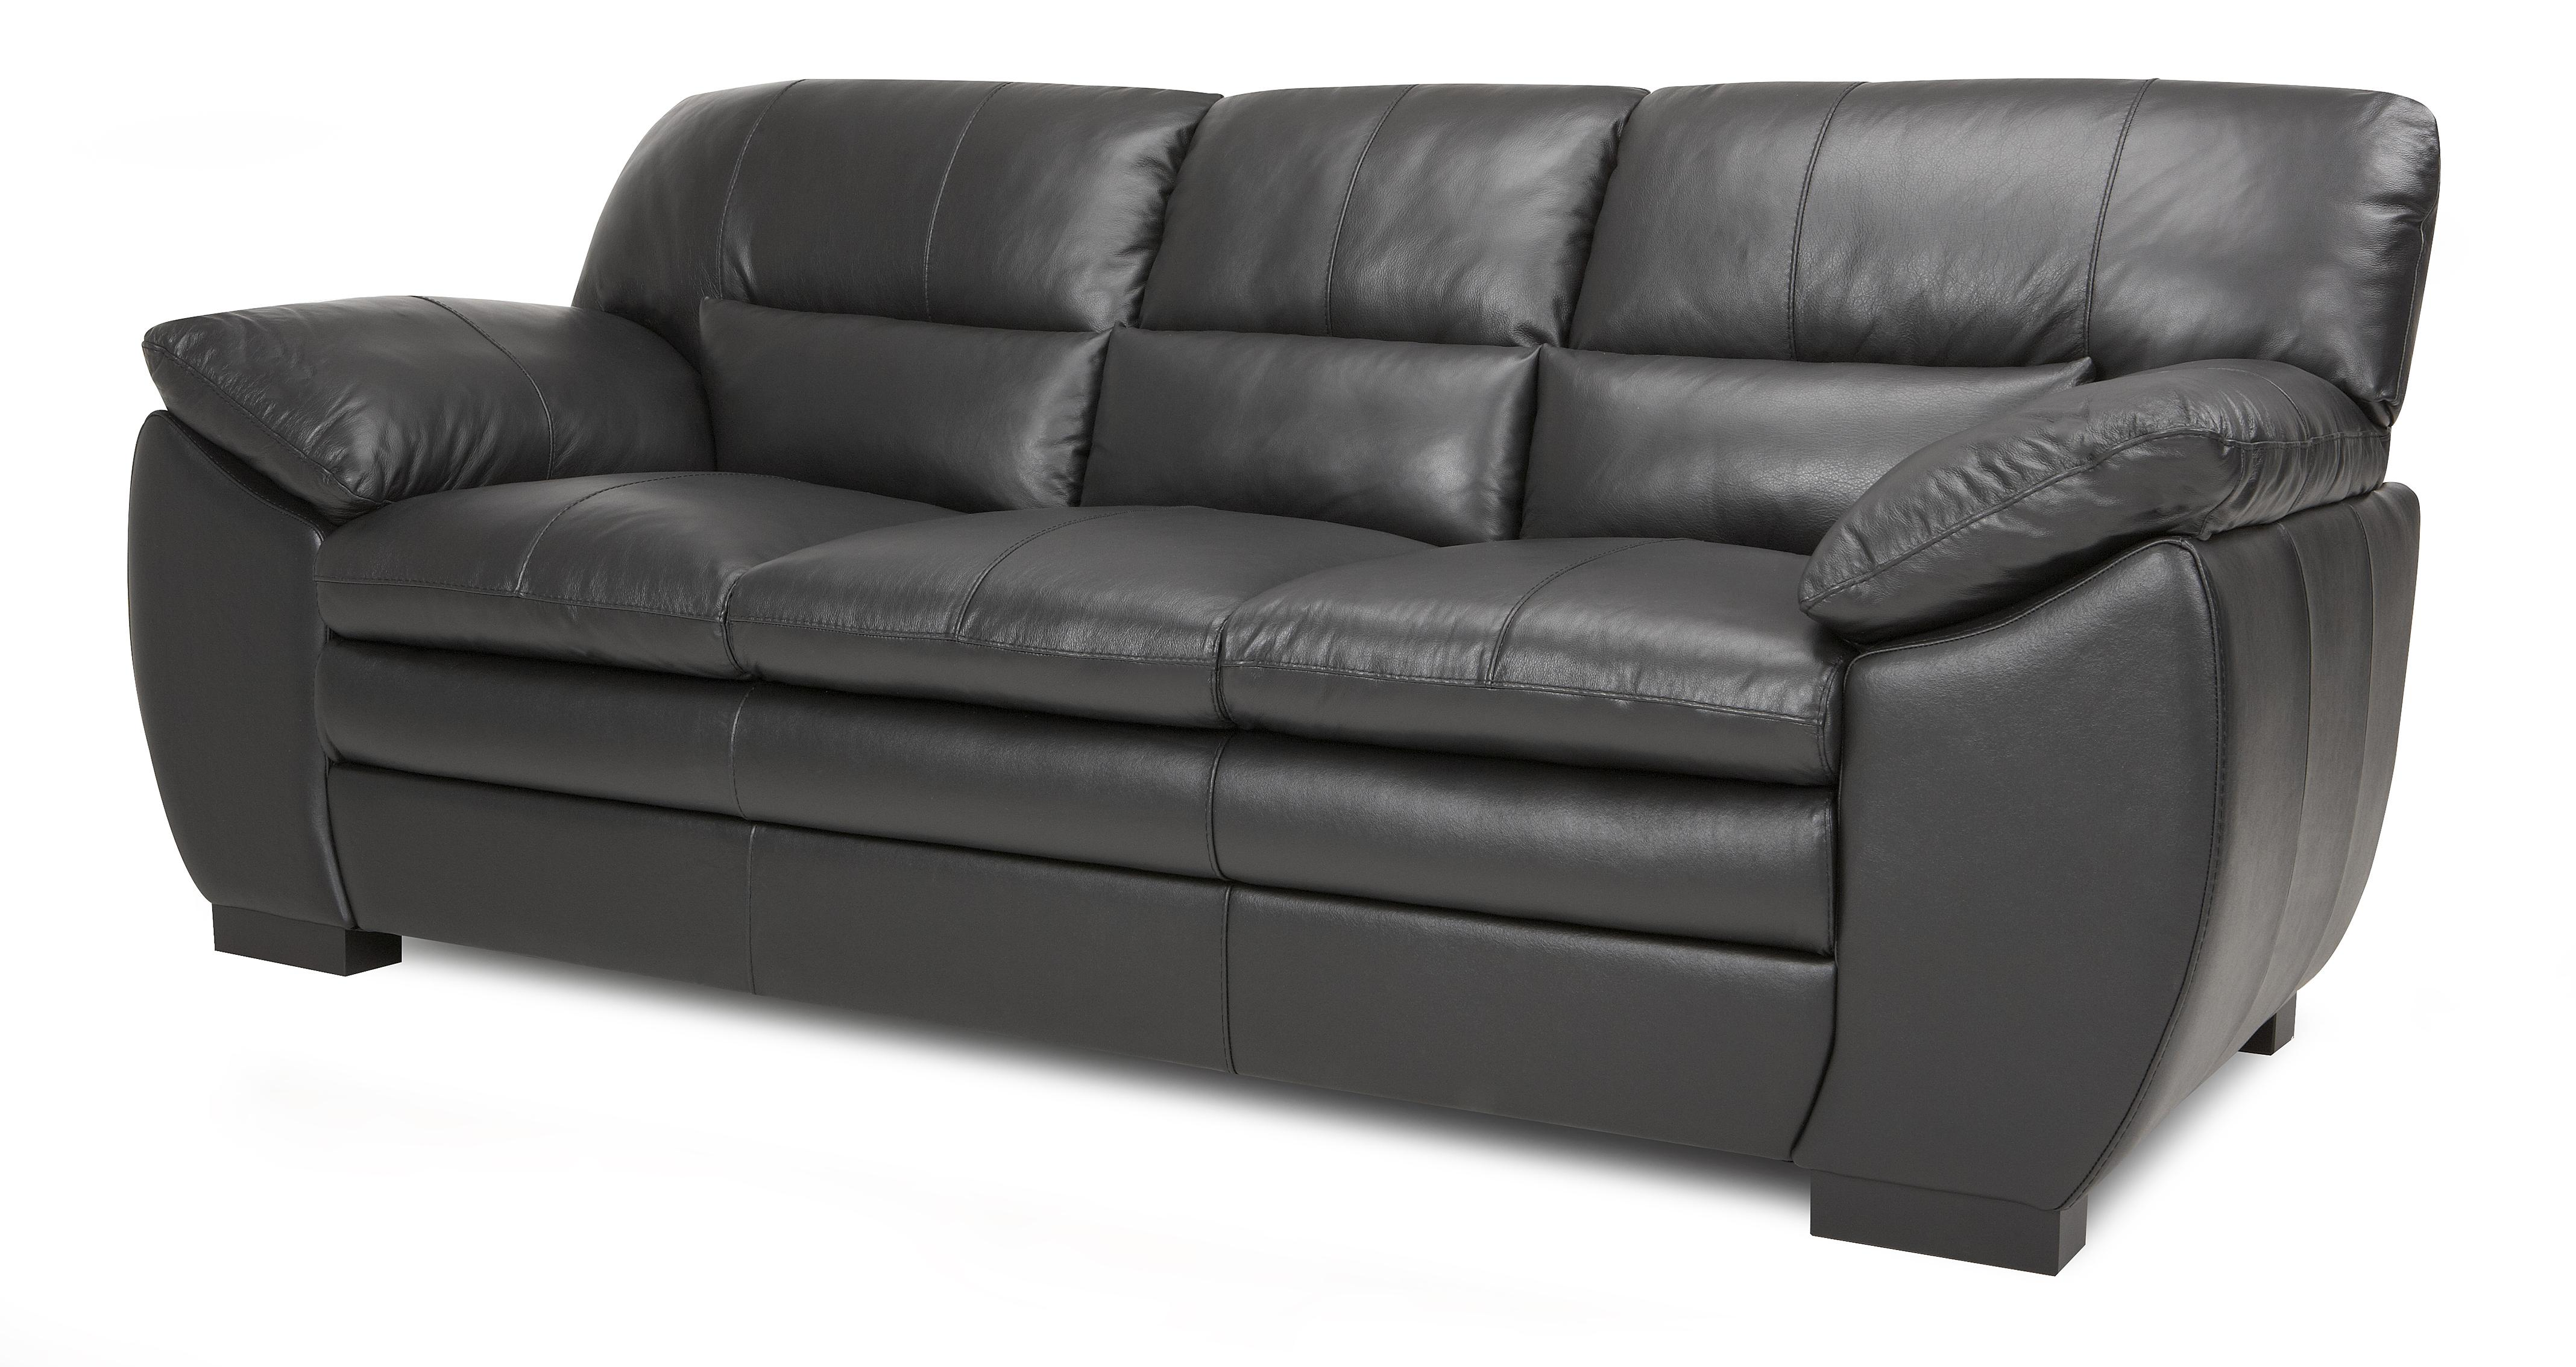 new sofas dfs leather chesterfield online force black 3 seater sofa